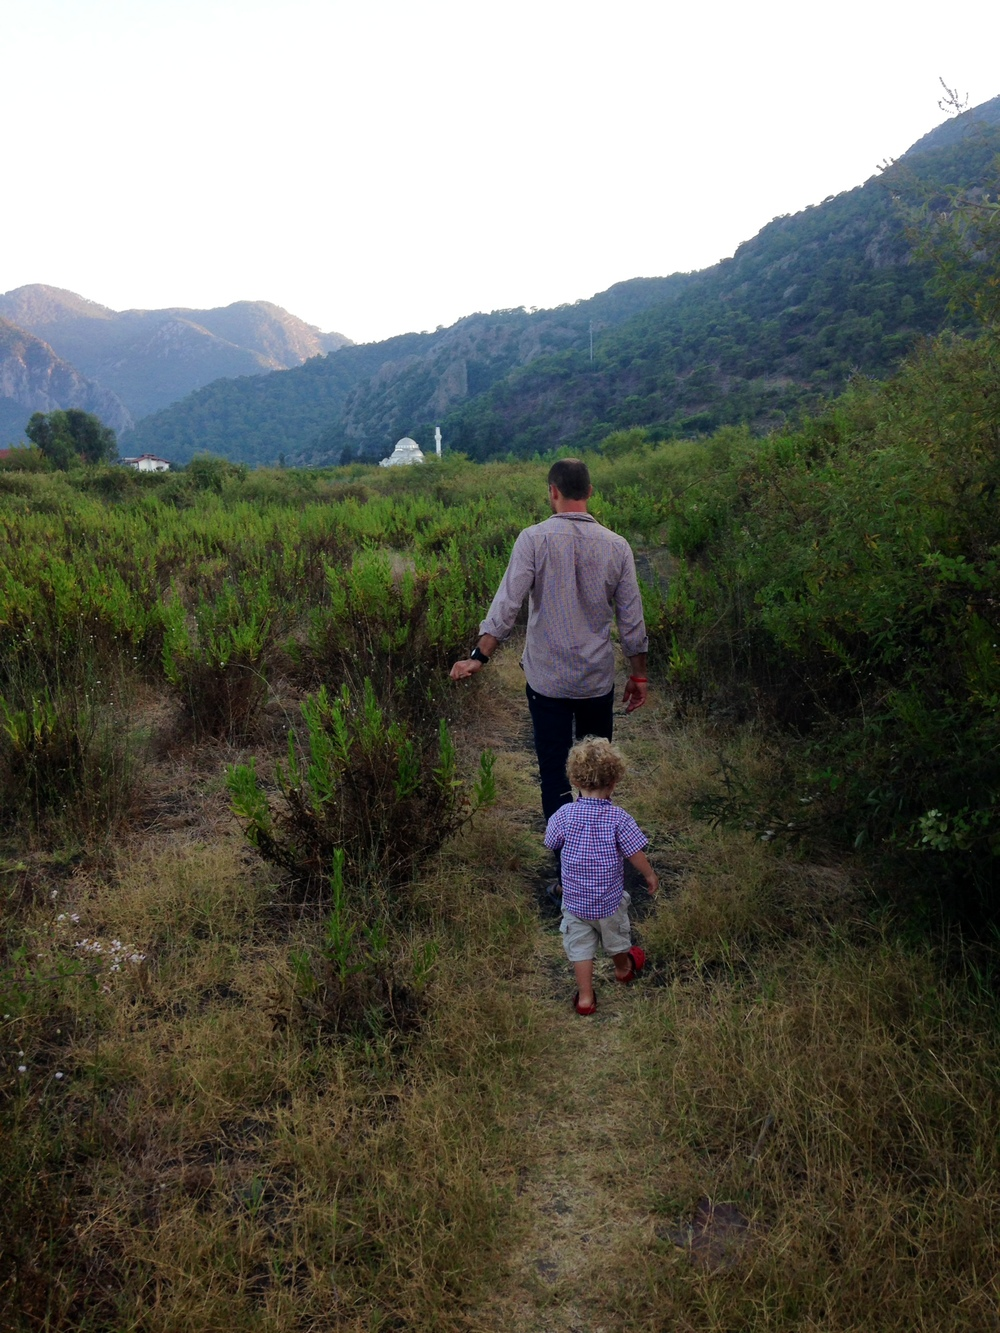 Daddy leading the way in Cirali, Turkey